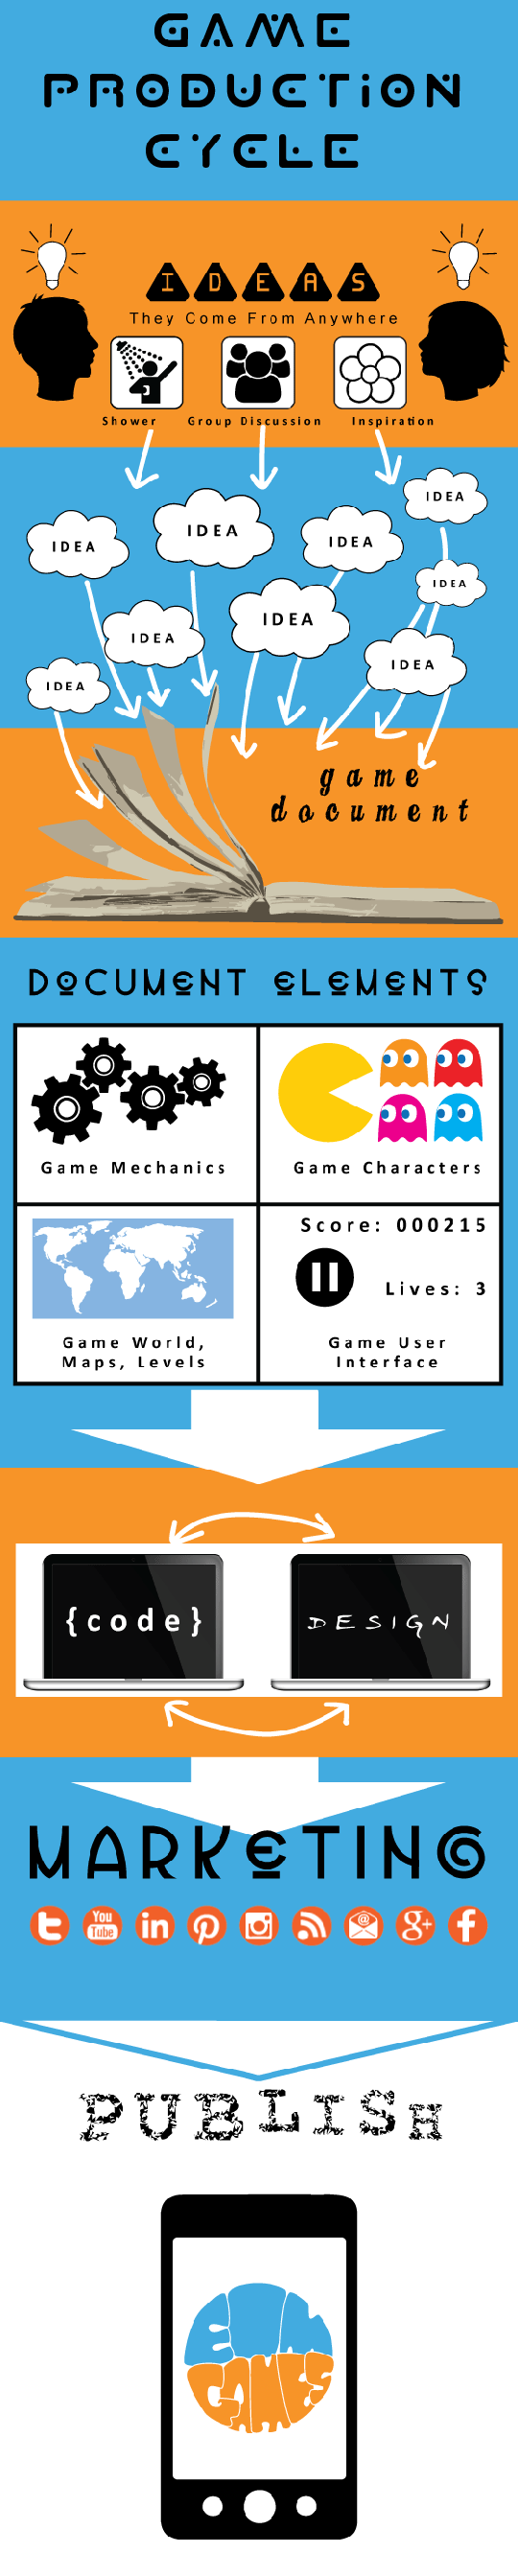 infographic game production cycle